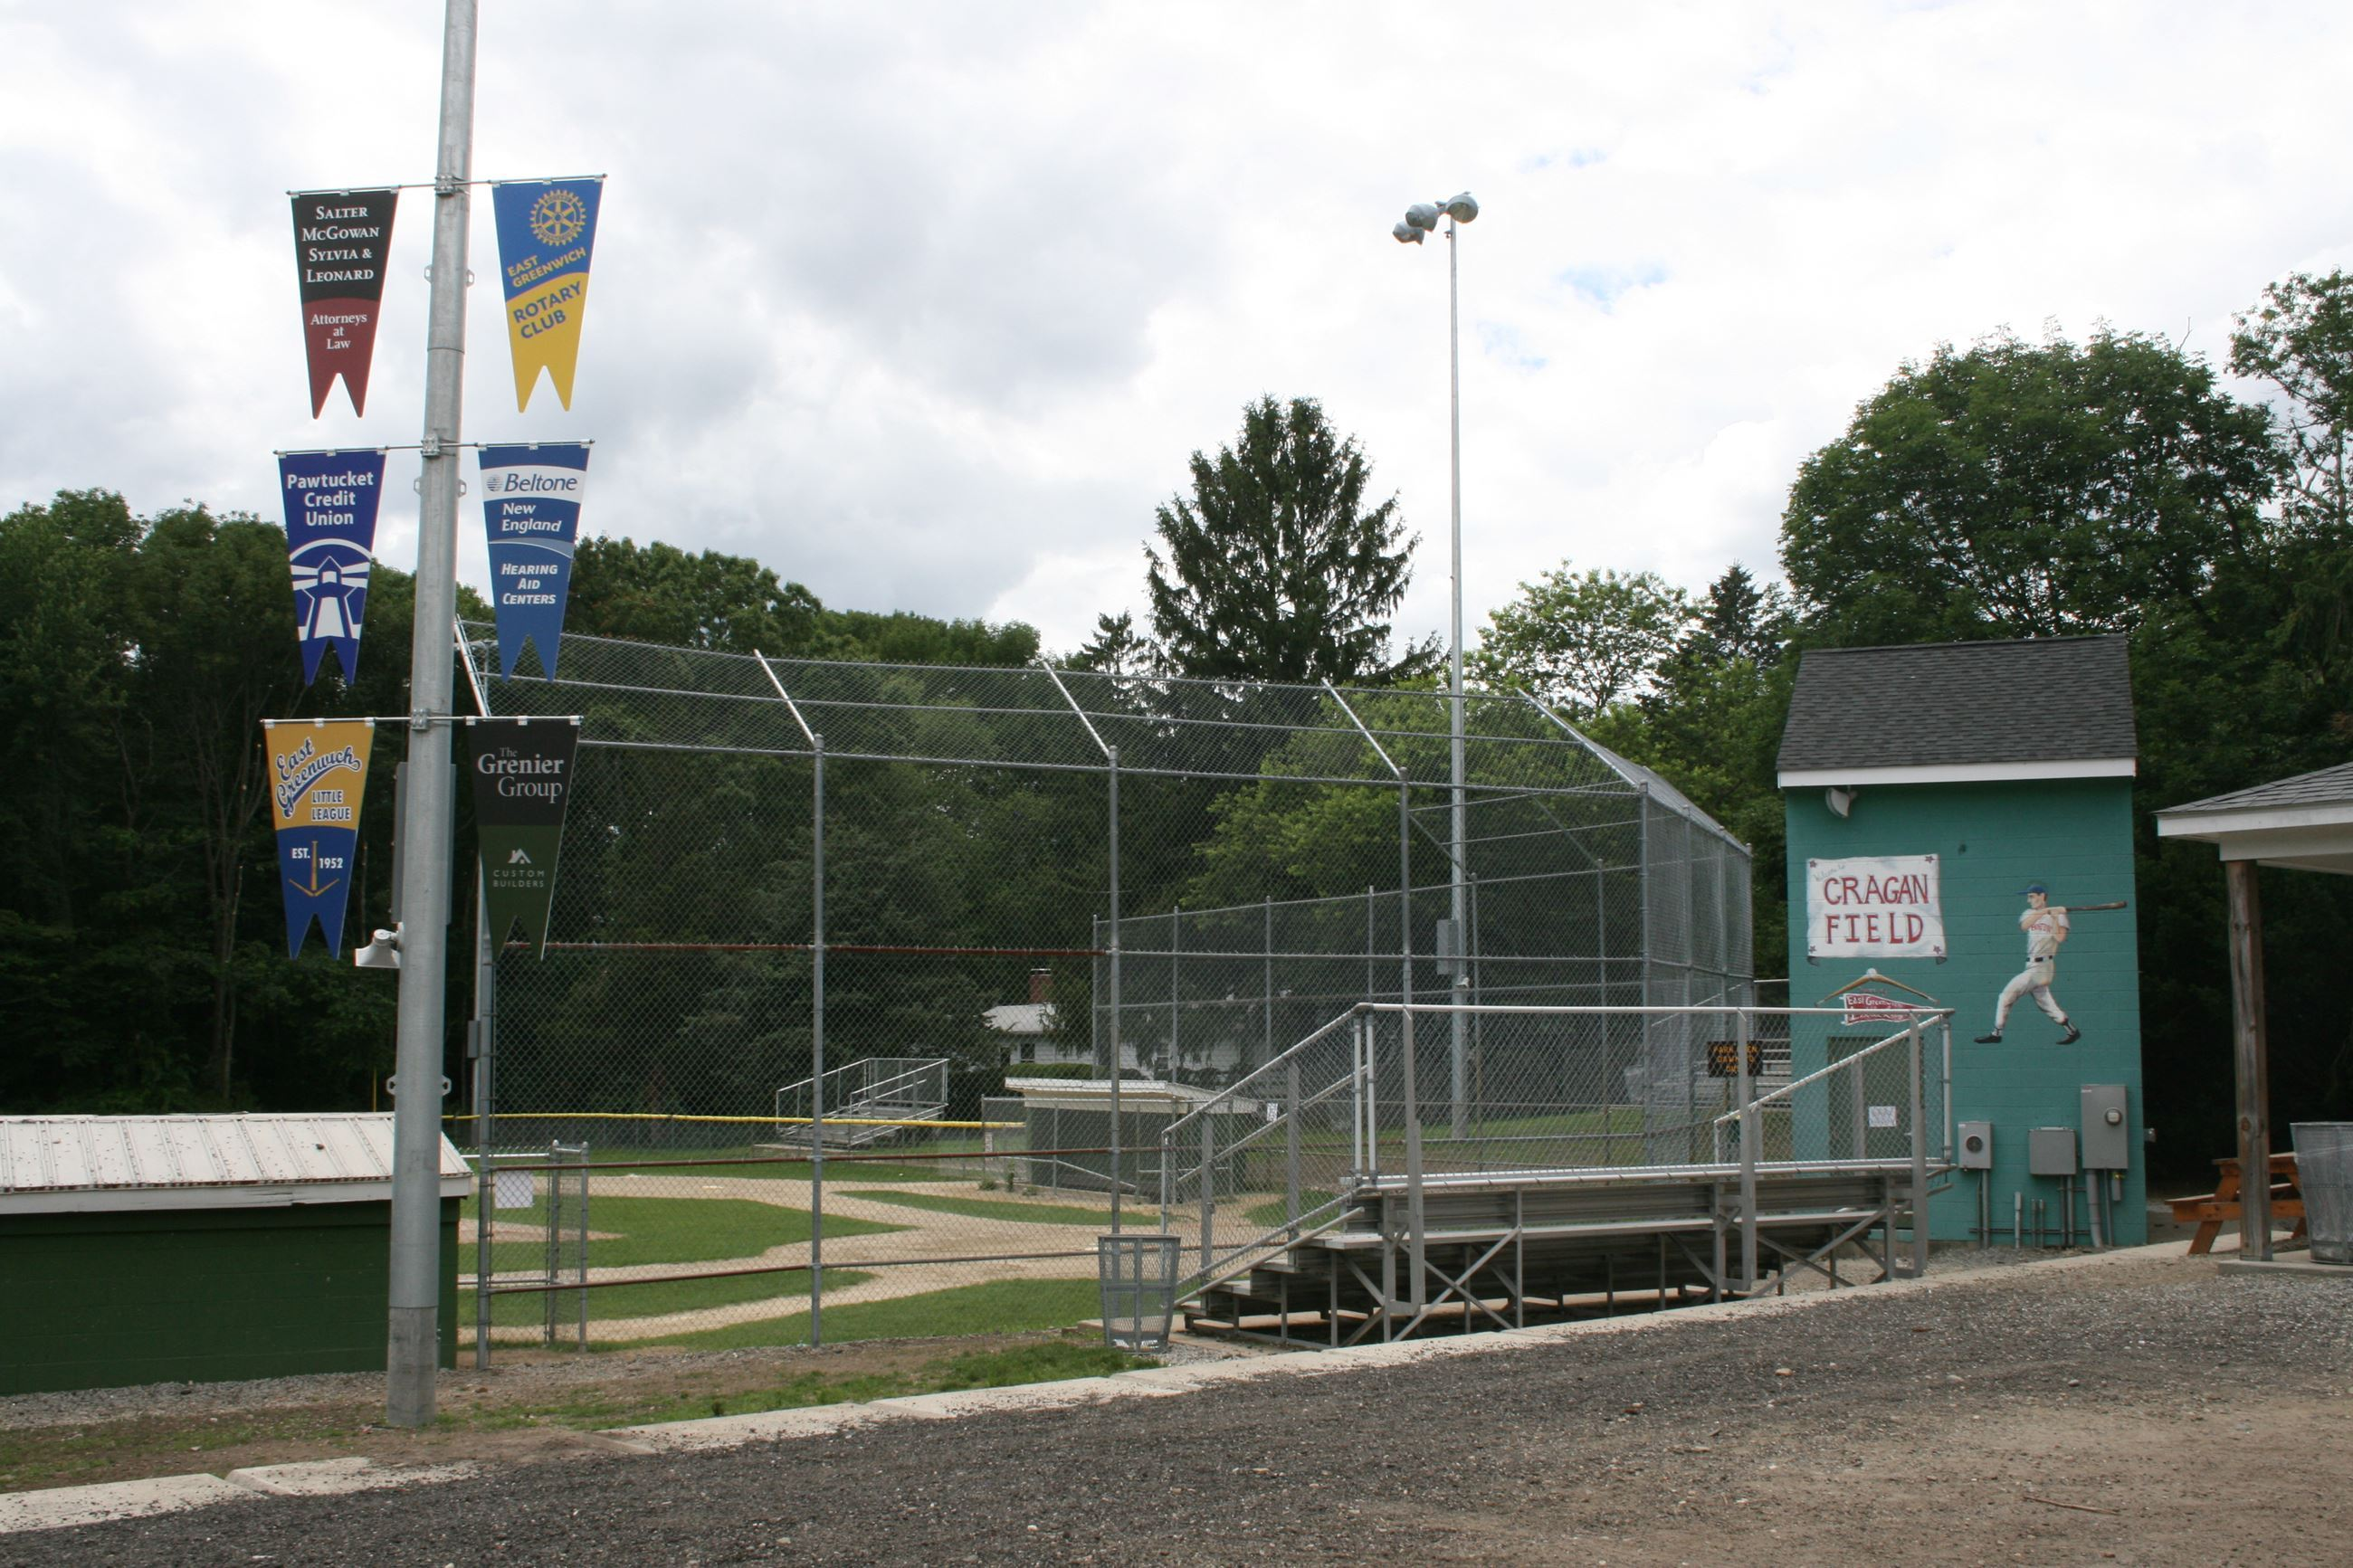 Image of Cragan Field